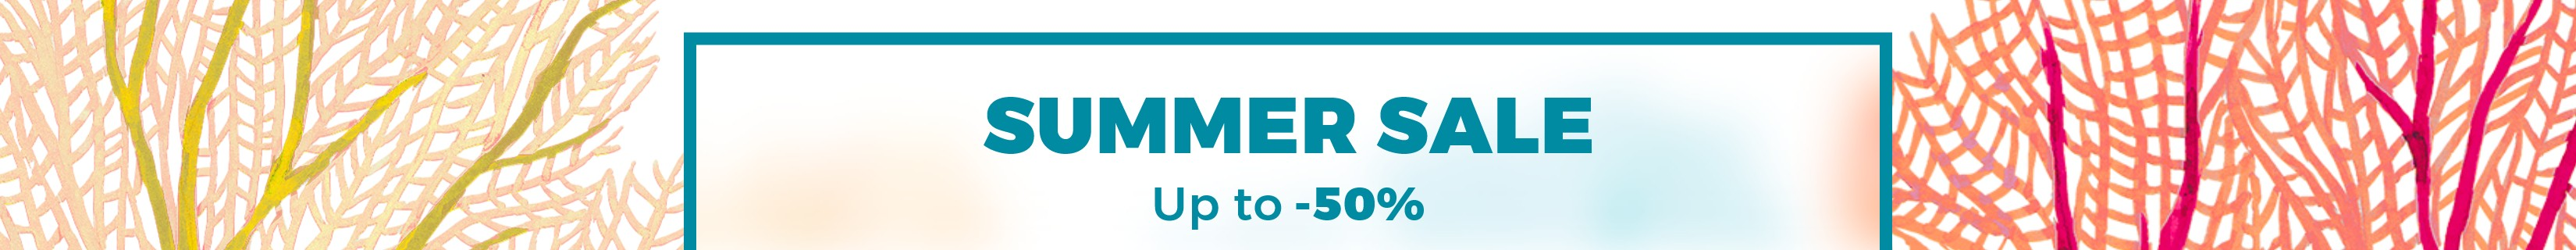 SUMMER SALES DISCOUNTS UNTIL 50% OFF EXPIRES ON 31.07